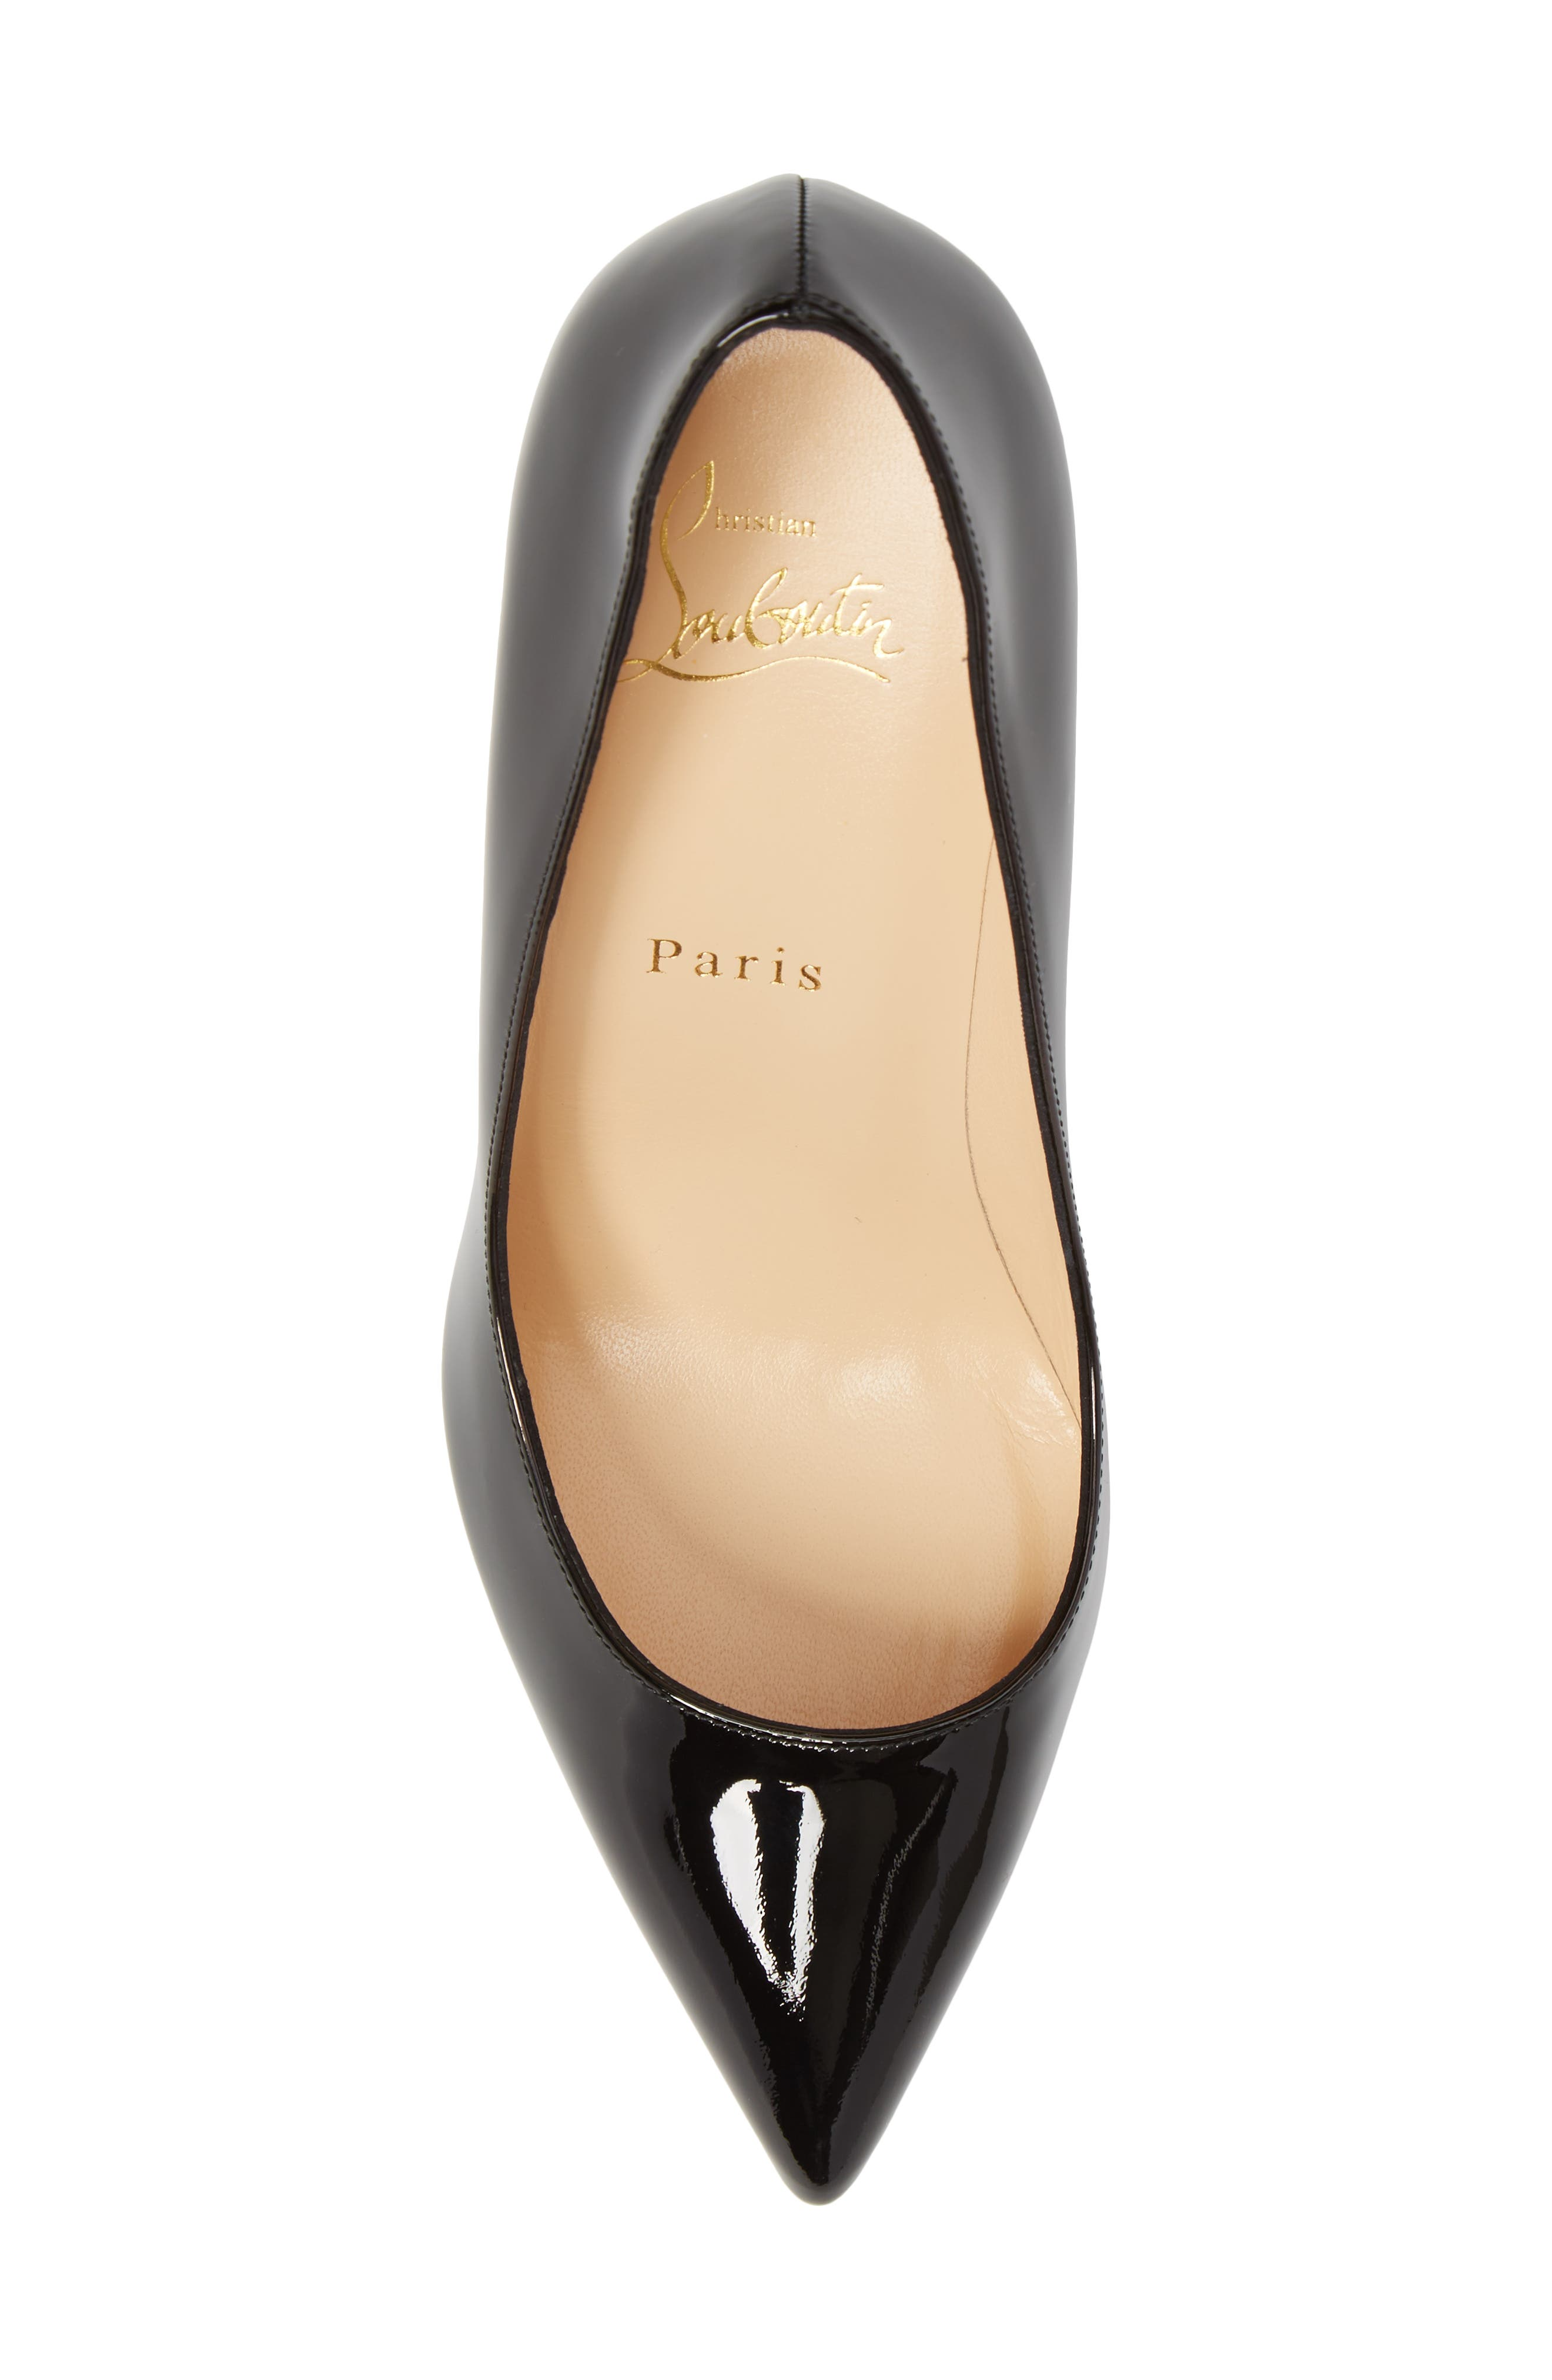 Pigalle Plato Pointy Toe Platform Pump,                             Alternate thumbnail 5, color,                             BLACK PATENT